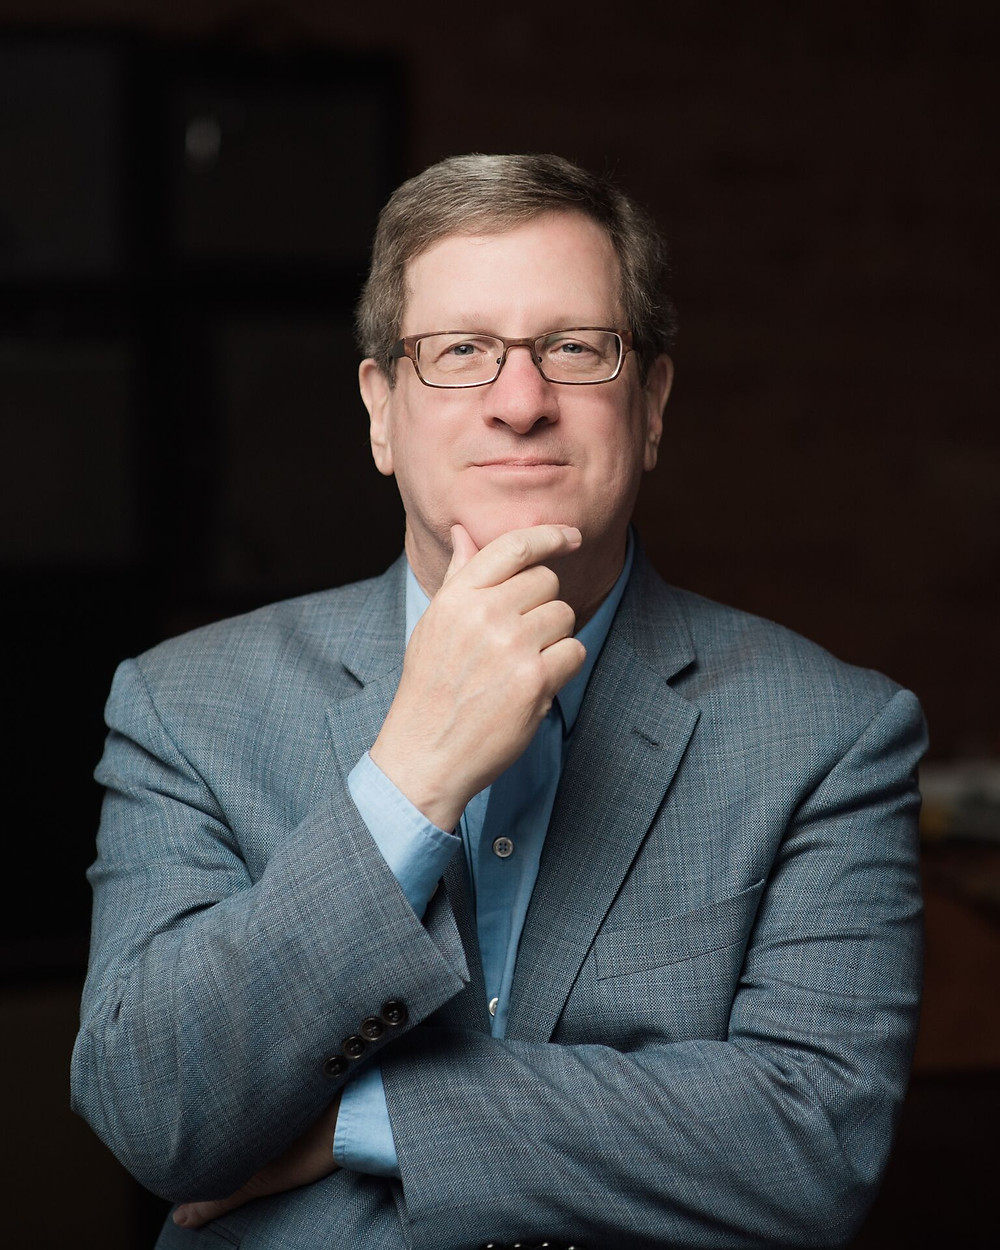 West Valley Good Friday Keynote Speaker Lee Strobel